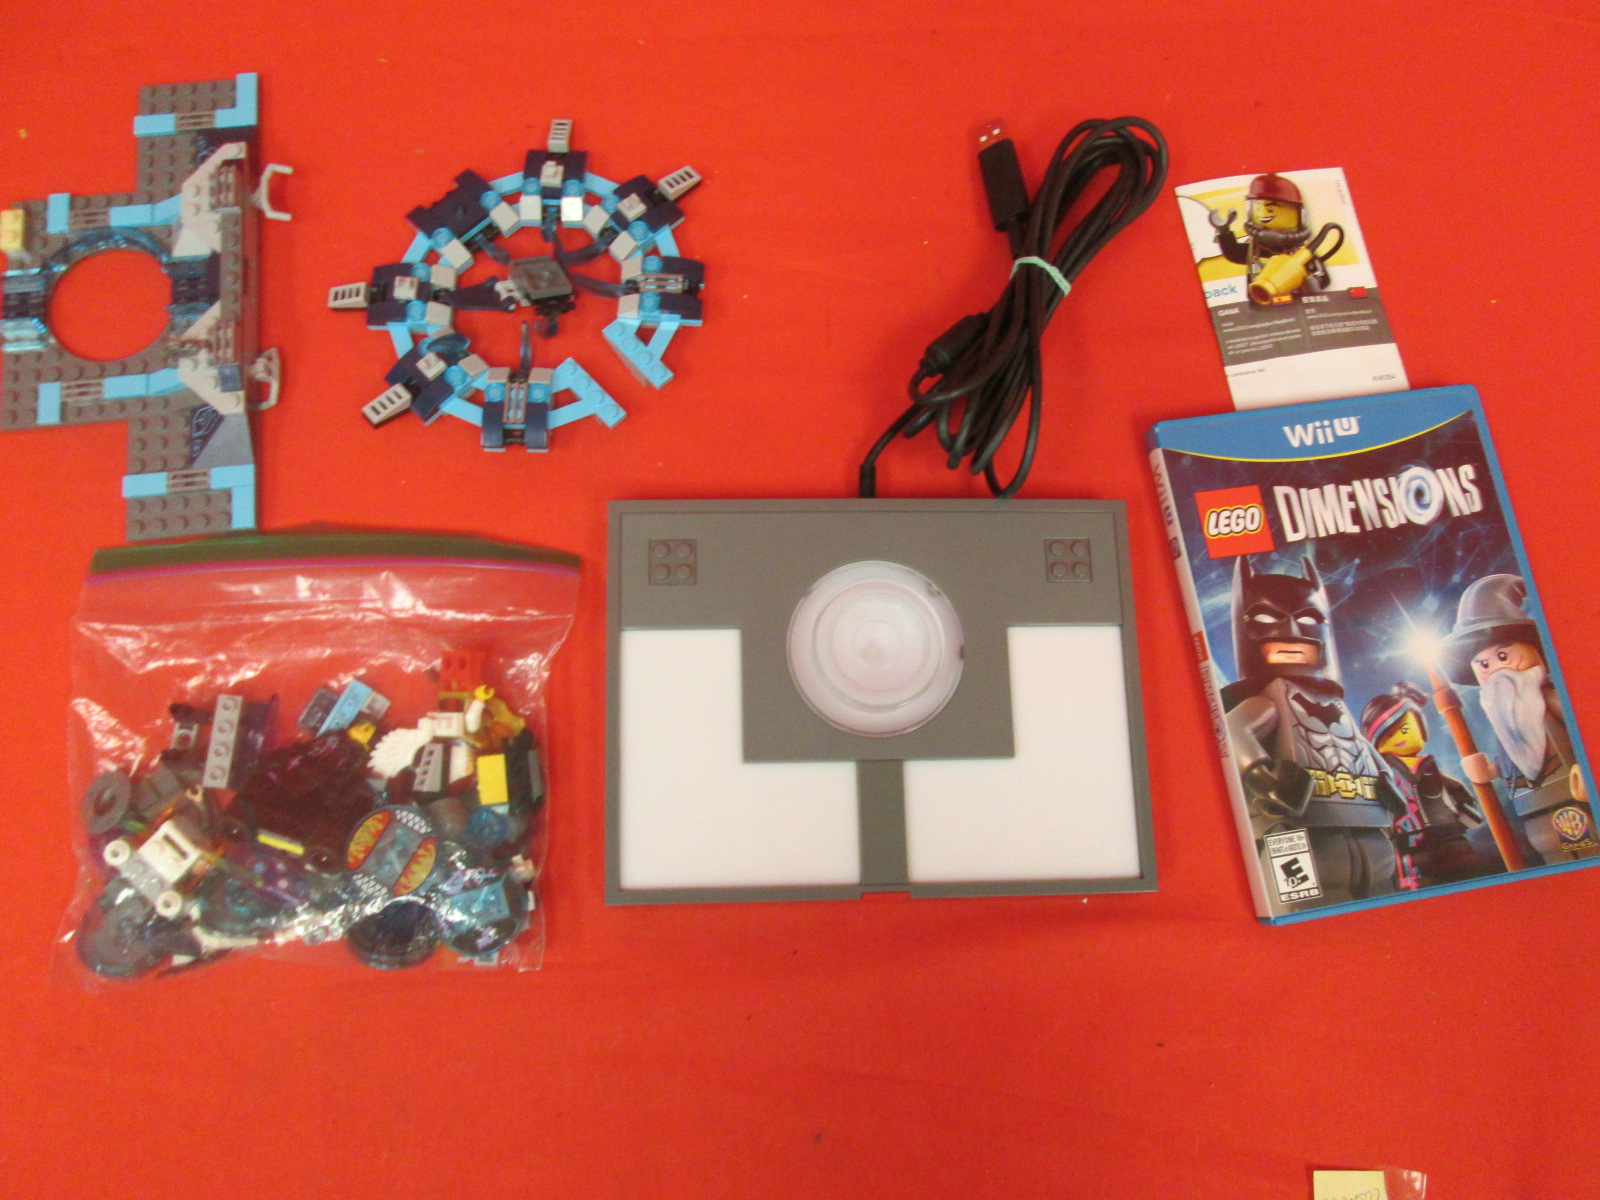 Lego Dimensions Starter Pack Incomplete For Wii U